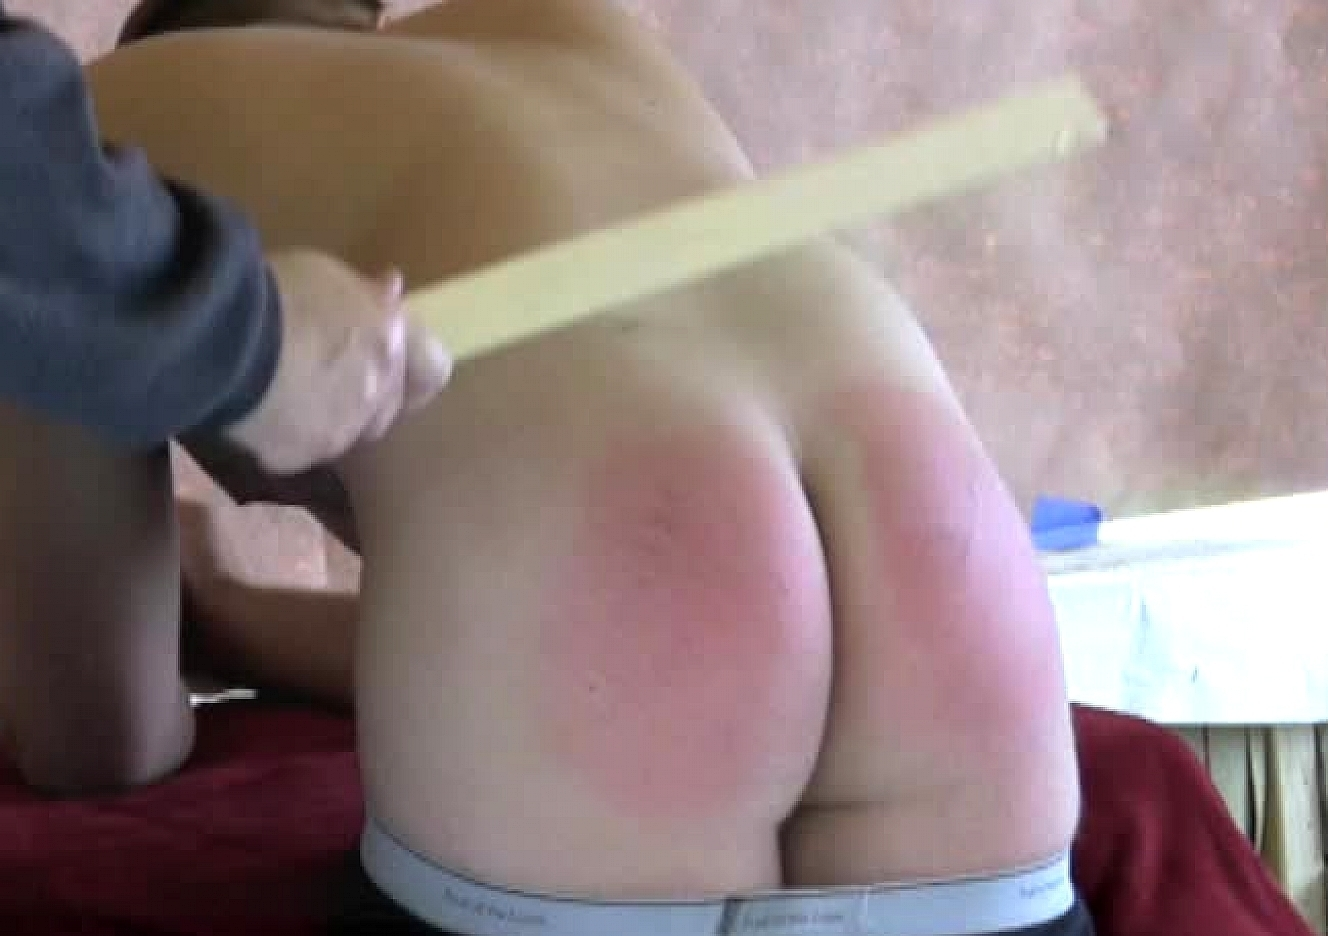 content/110724102-kevin-coles-first-spanking-part-2/0.jpg